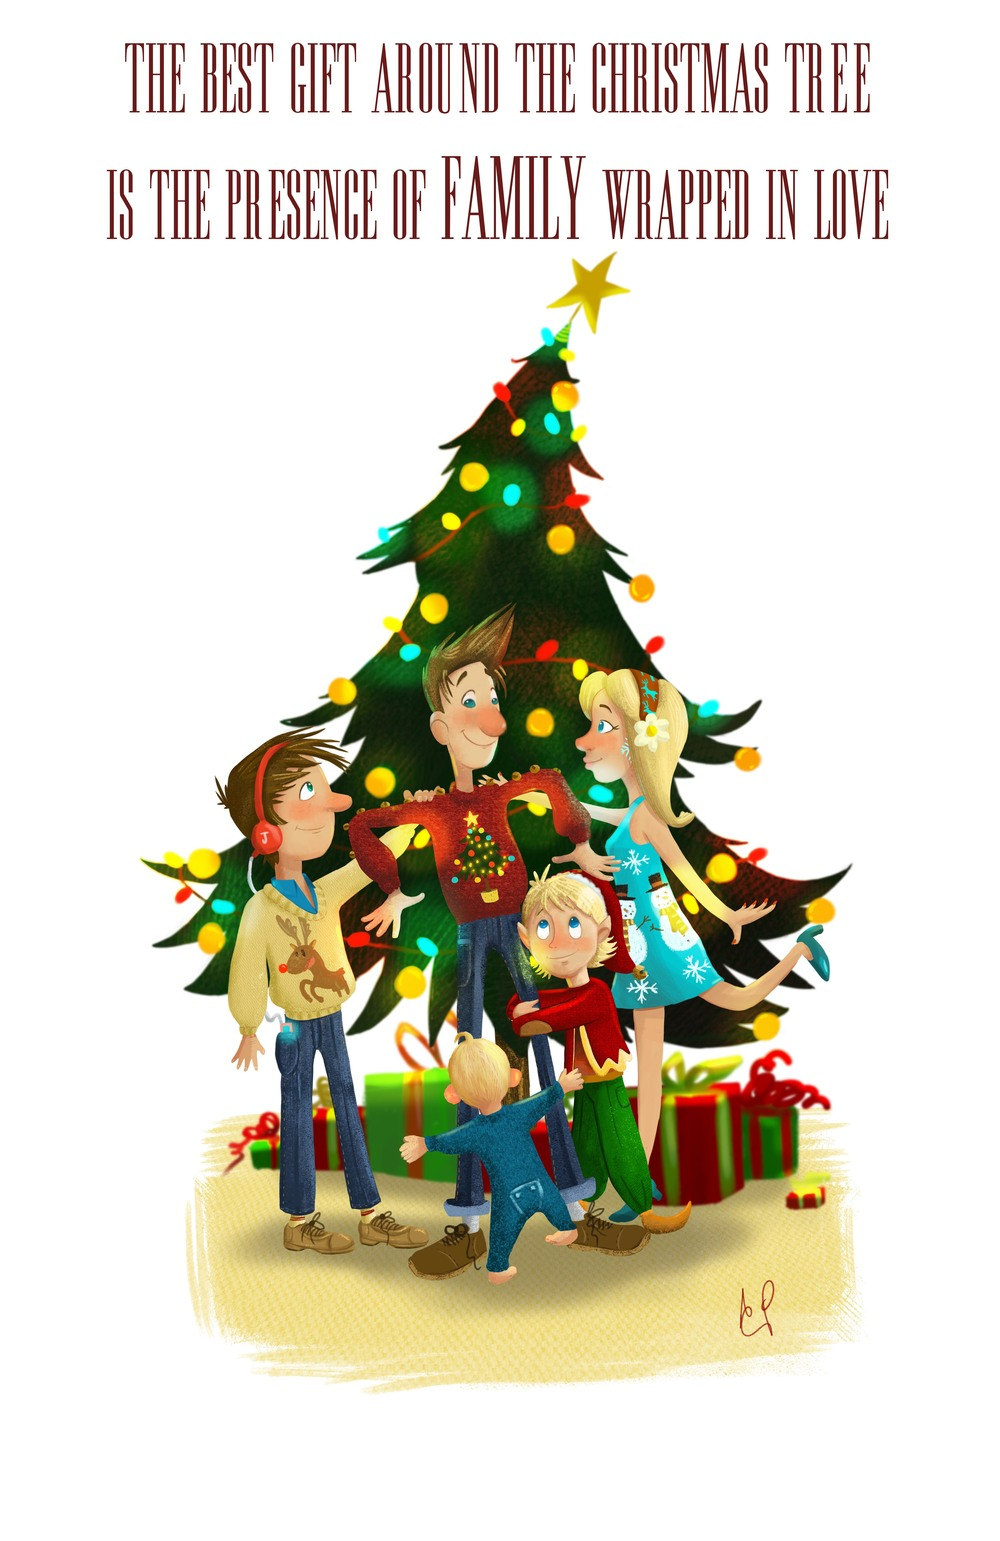 the best gift around the christmas tree is the presence of family wrapped in love adam walker parker illustration